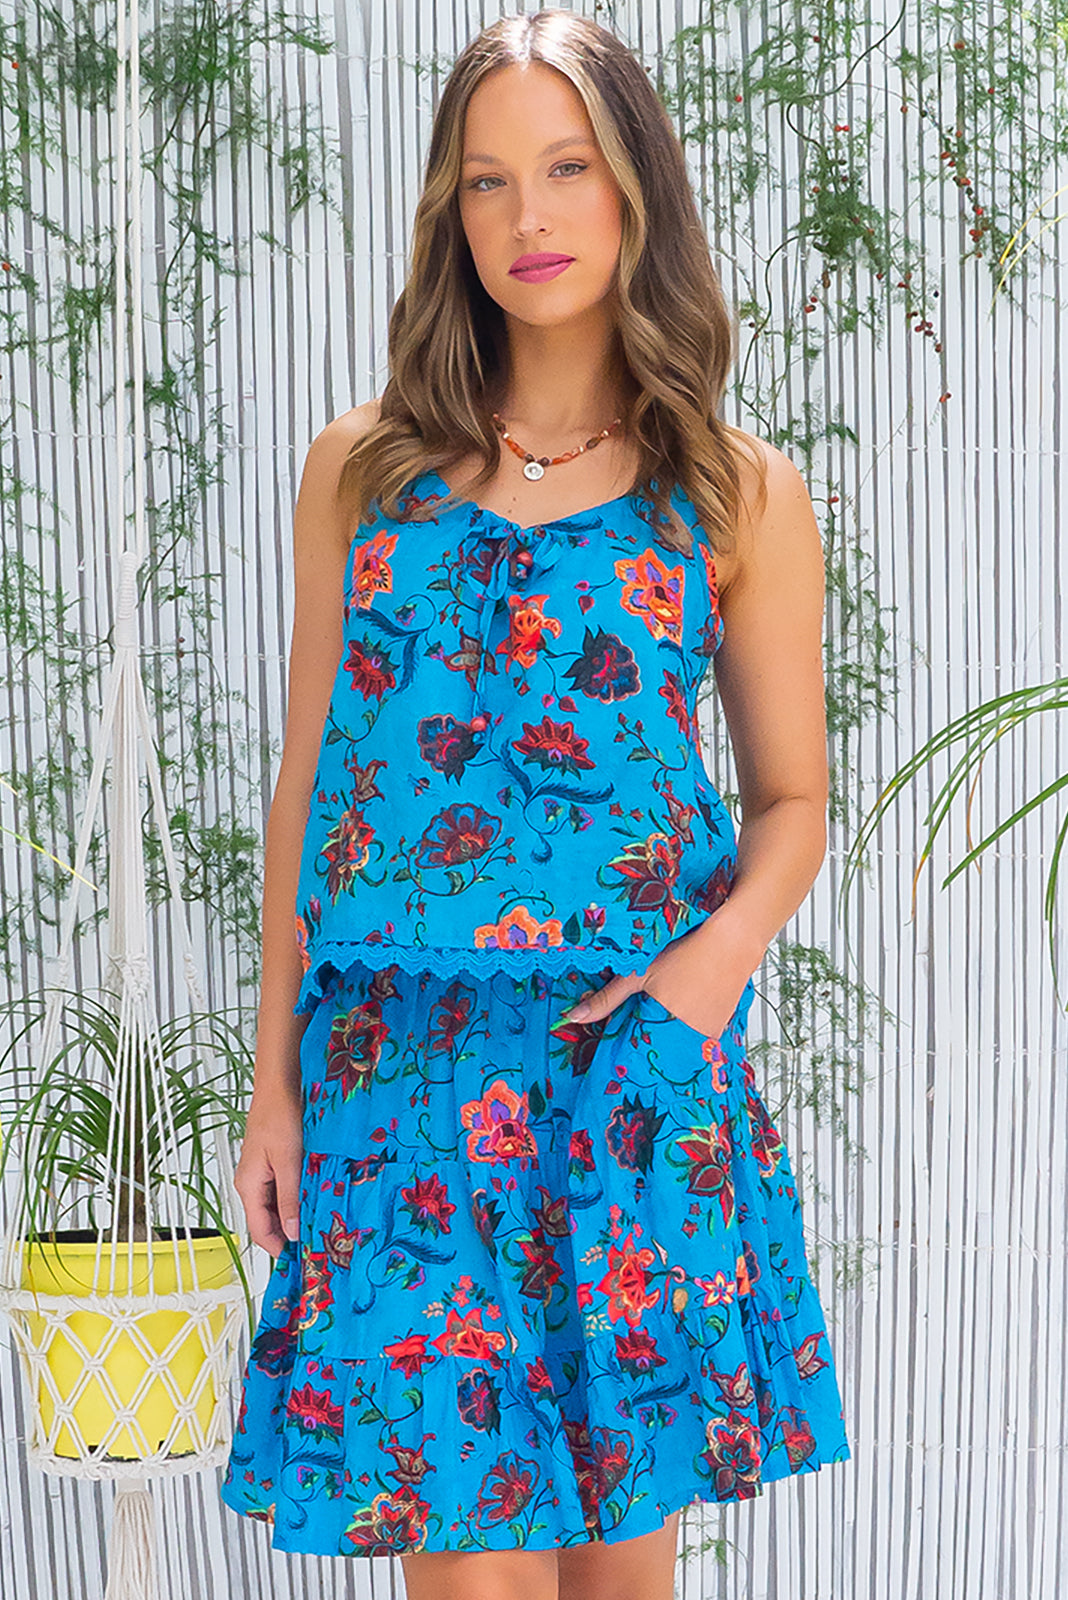 The Valencia Barrio Blue Cami Top has bead detail on neck ties, lace detail on hem and 65% cotton, 35% Viscose in blue base with large paisley print.